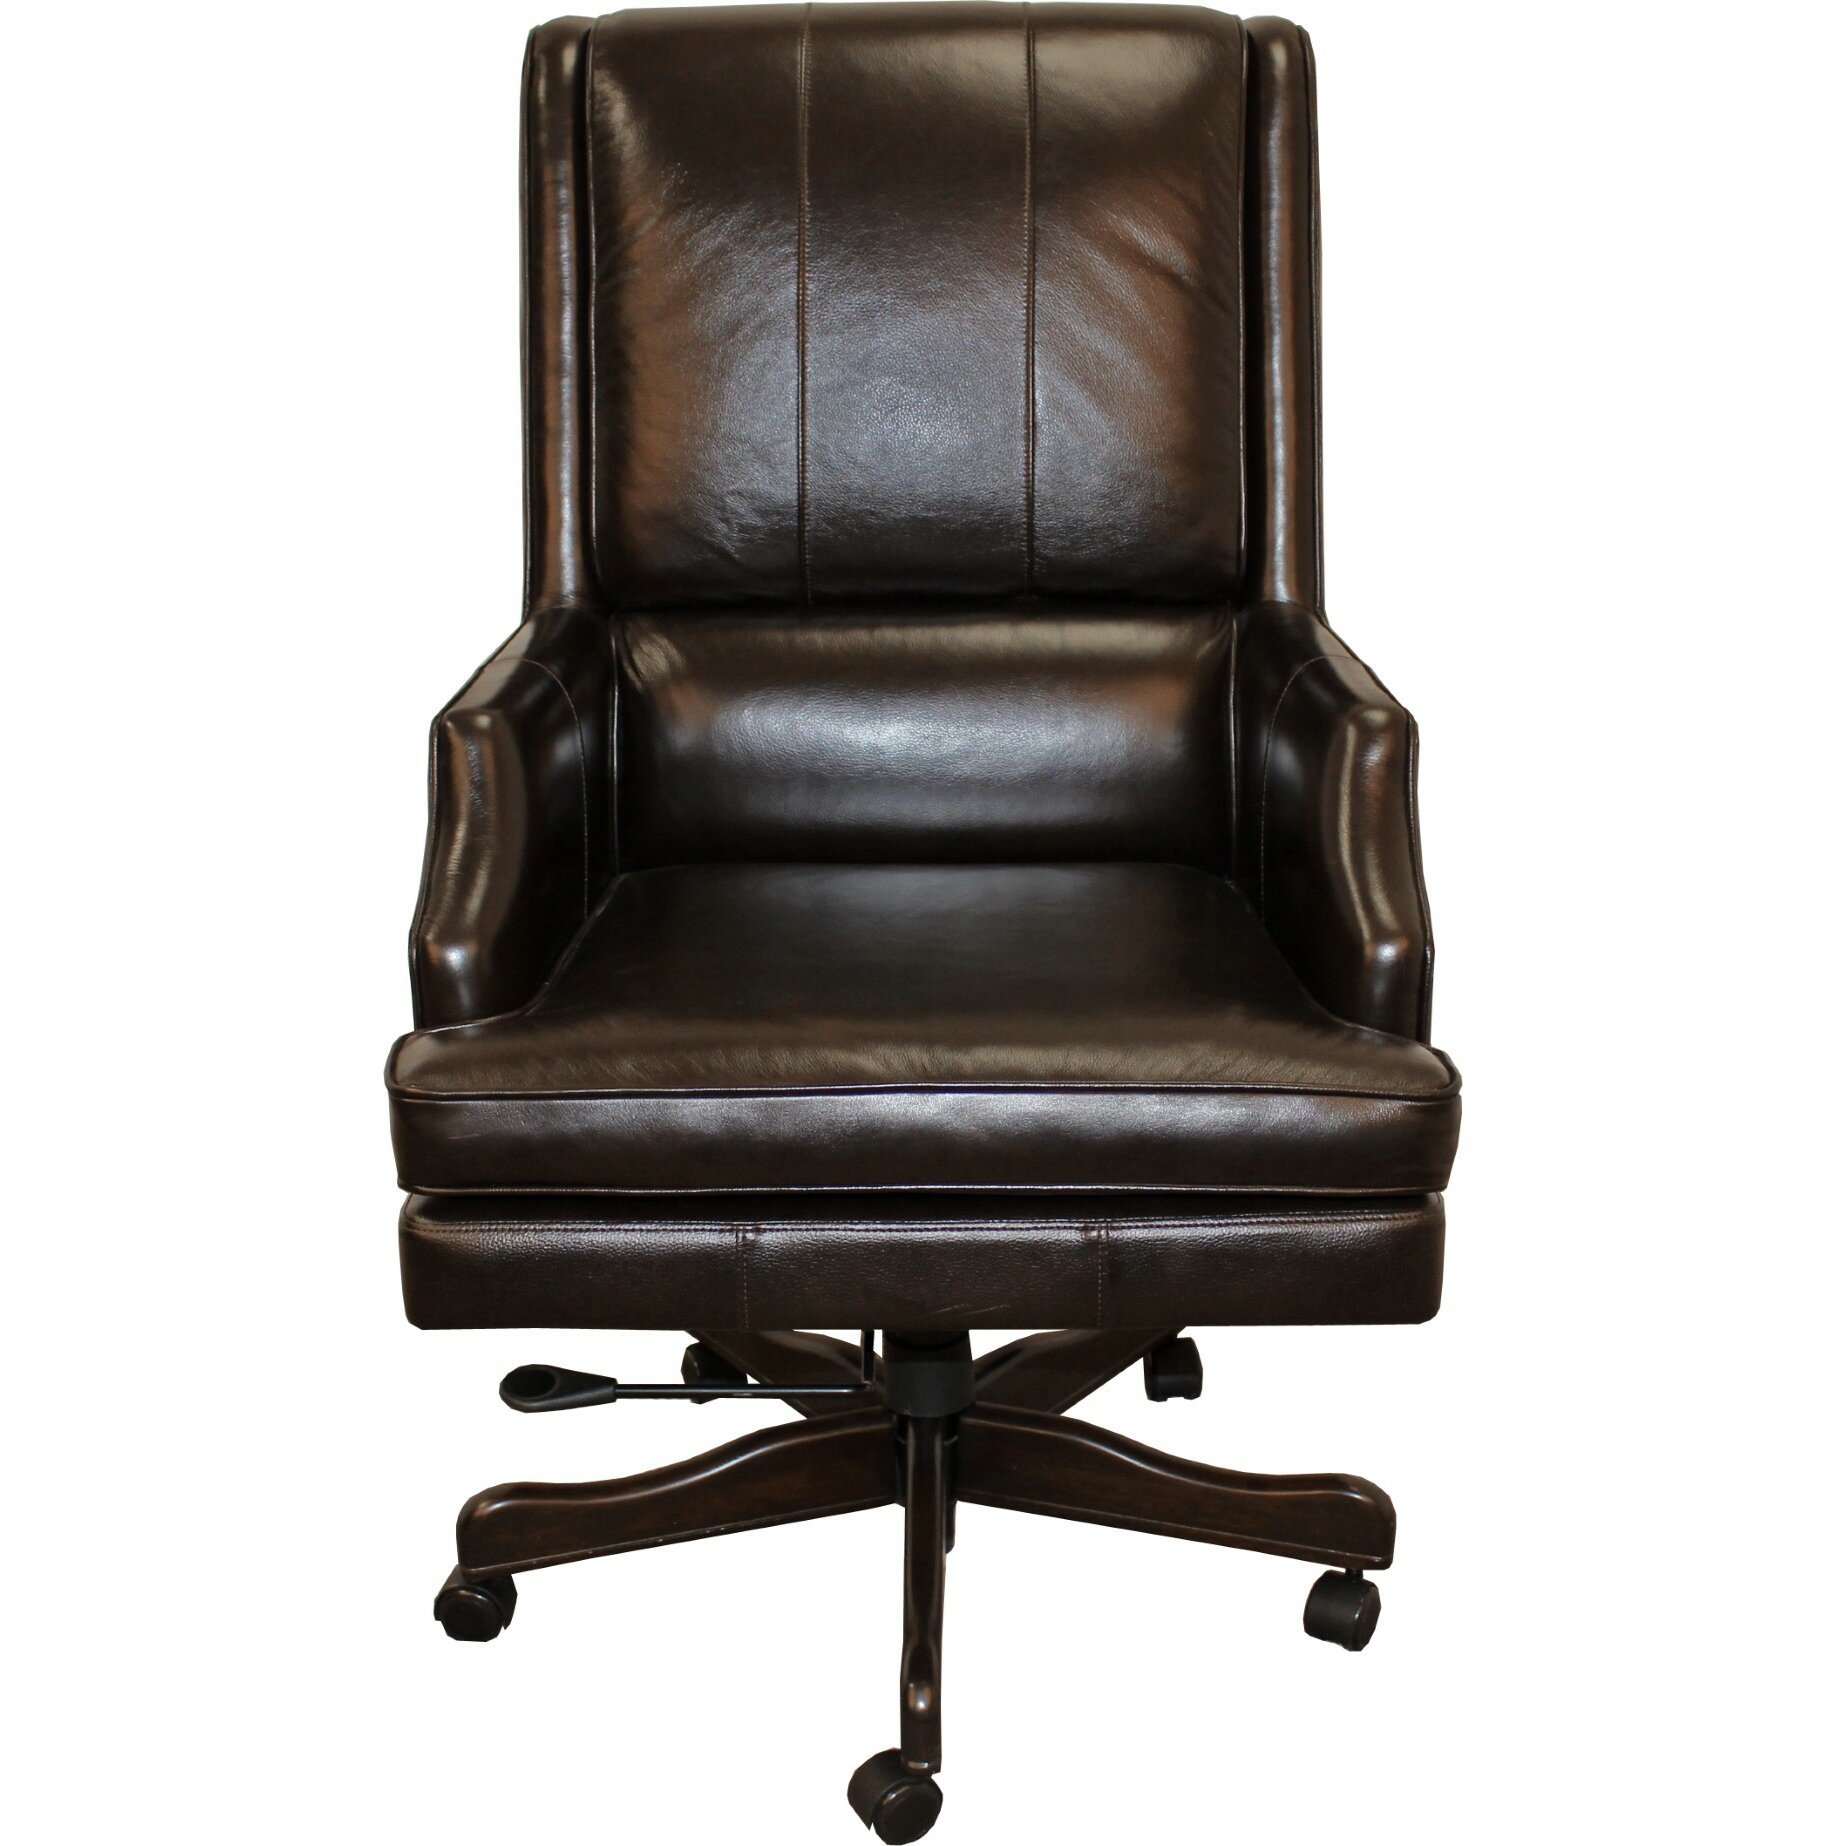 Parker house high back leather executive chair reviews for High back leather chairs